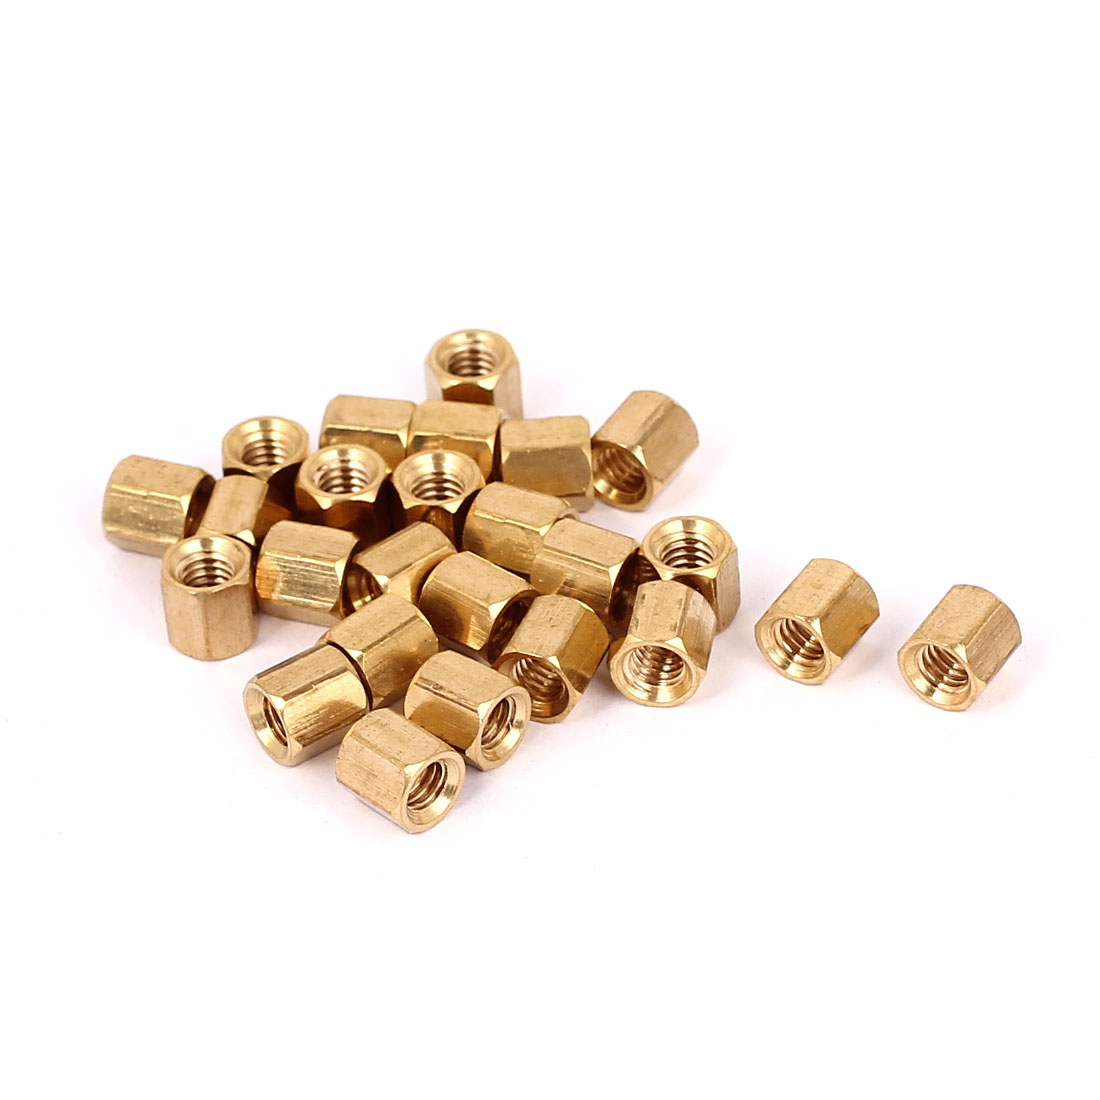 M4 x 6mm Female Threaded Brass Hex Standoff Pillar Rod Spacer Coupler Nut 25pcs